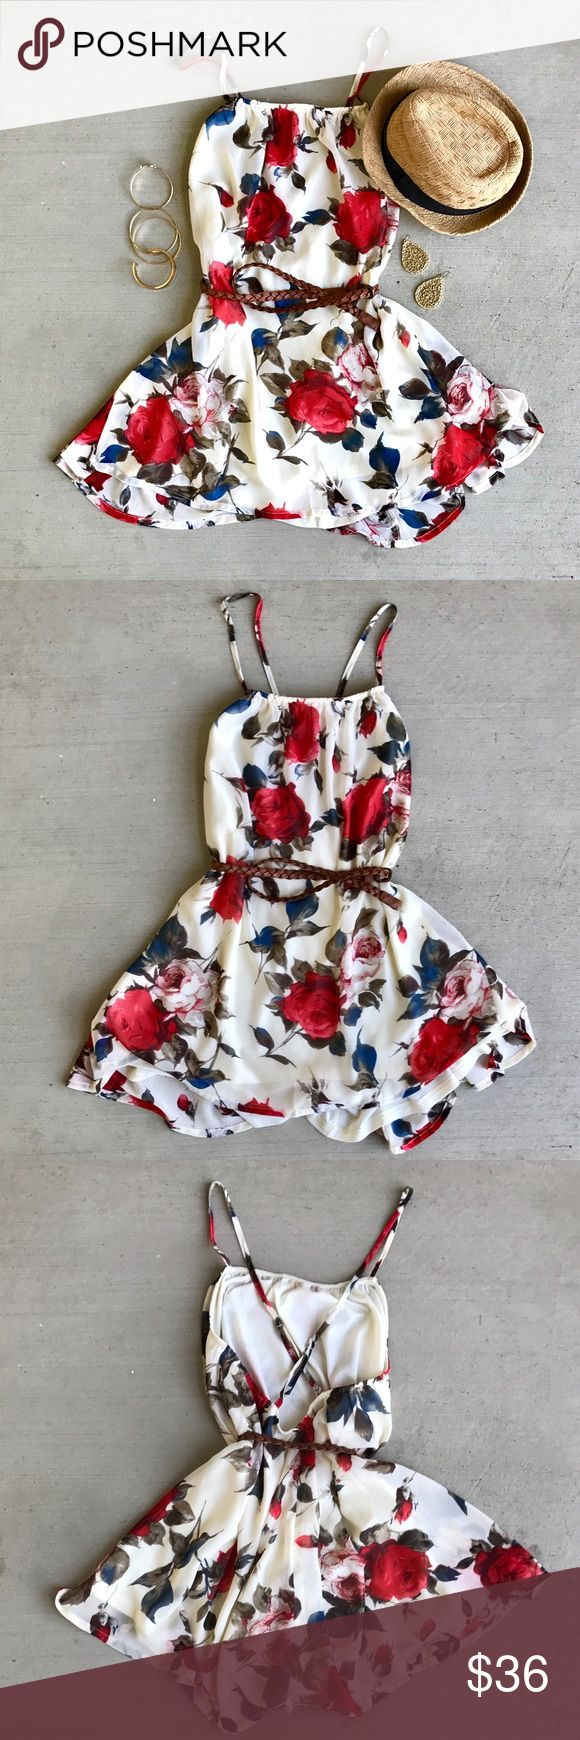 TOBI Floral Shift Dress Keep it cute & flirty in this floral shift dress. Pair with a belt to give the dress shape or with a jean jacket for cooler days!   •Lined •Criss-Cross Back  •Adjustable Straps •Polyester   ❥XO, Kay Tobi Dresses